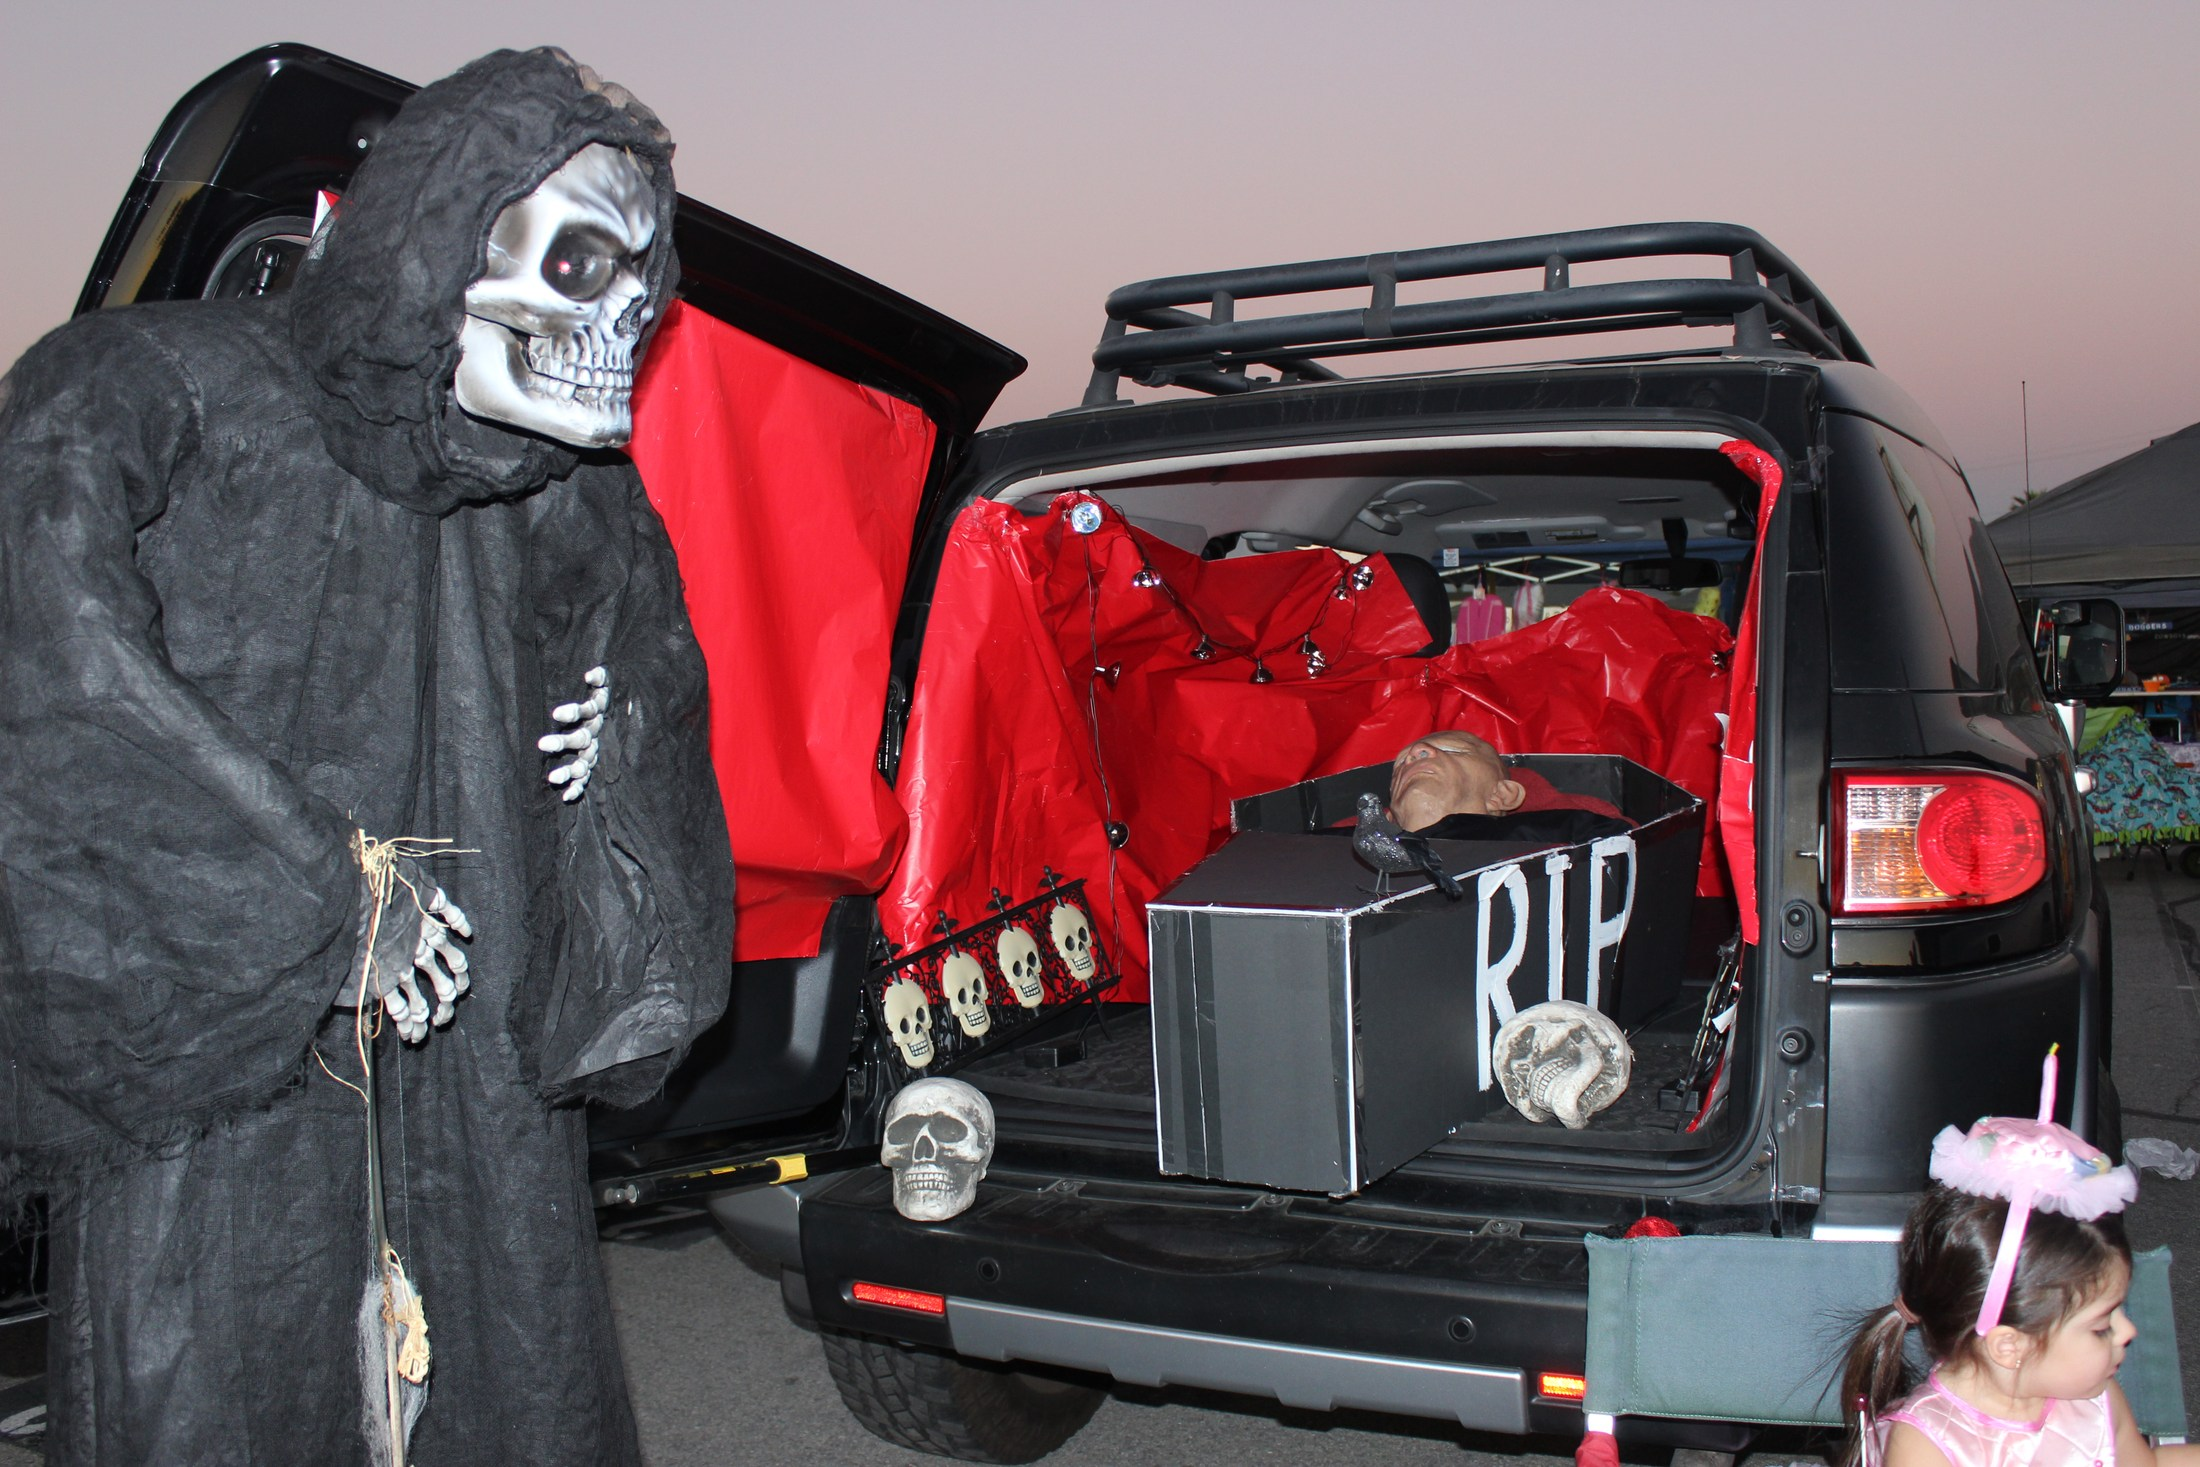 A scary trunk decorated for HMS Spooktacular